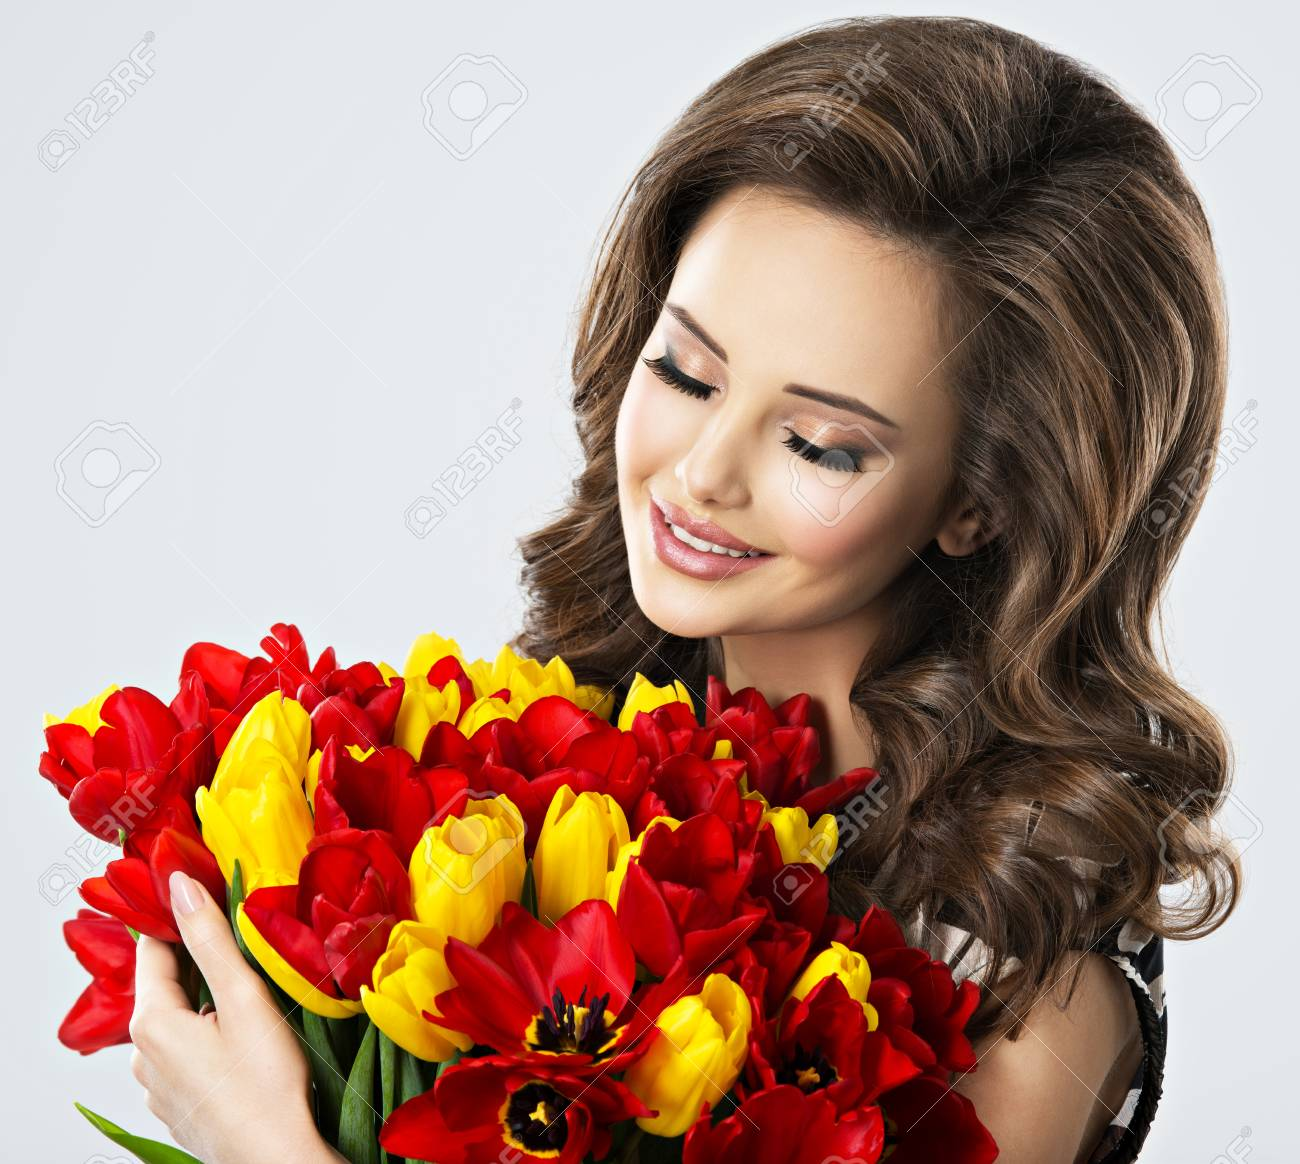 Portrait of calm beautiful woman with flowers in hands stock photo portrait of calm beautiful woman with flowers in hands stock photo 66159378 izmirmasajfo